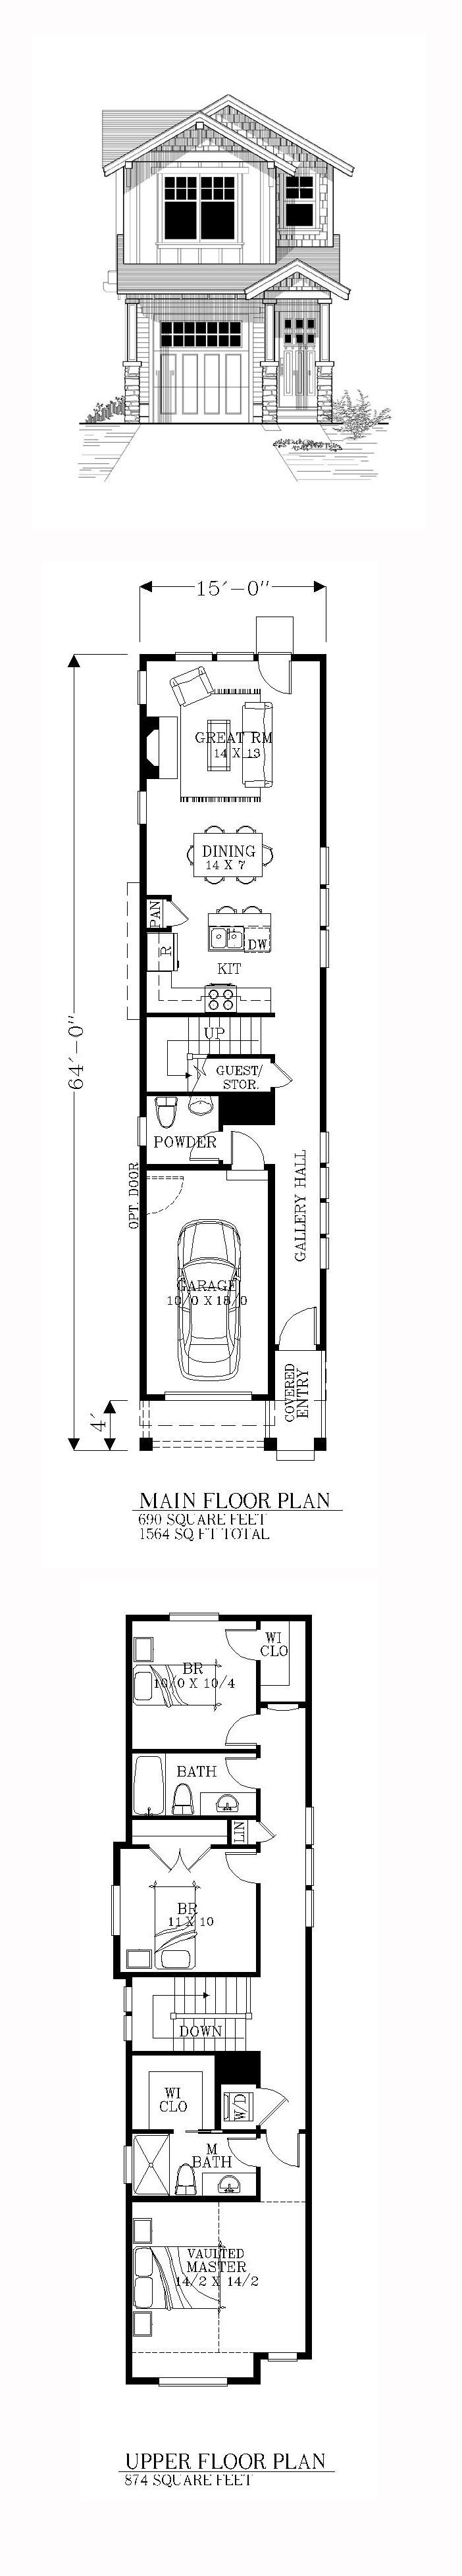 Excellent 17 Best Ideas About Narrow House Plans On Pinterest Small Home Largest Home Design Picture Inspirations Pitcheantrous